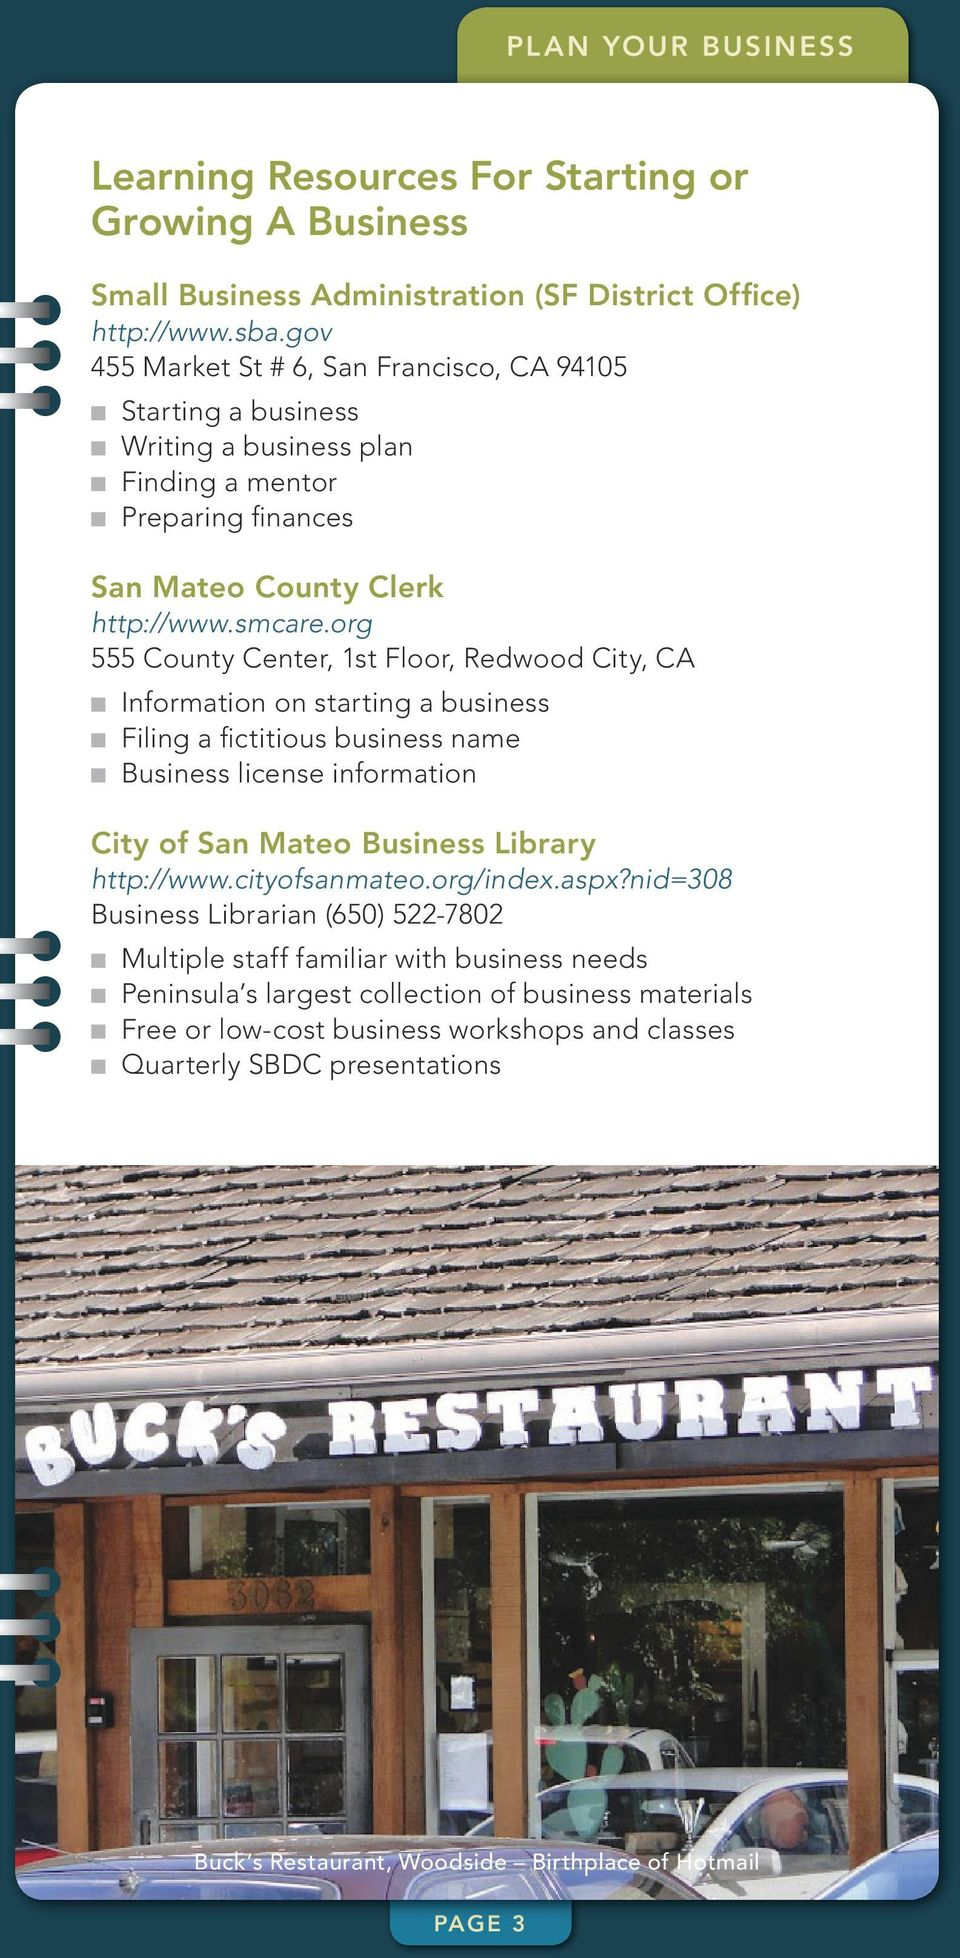 org 555 County Center, 1st Floor, Redwood City, CA n Information on starting a business n Filing a fictitious business name n Business license information City of San Mateo Business Library